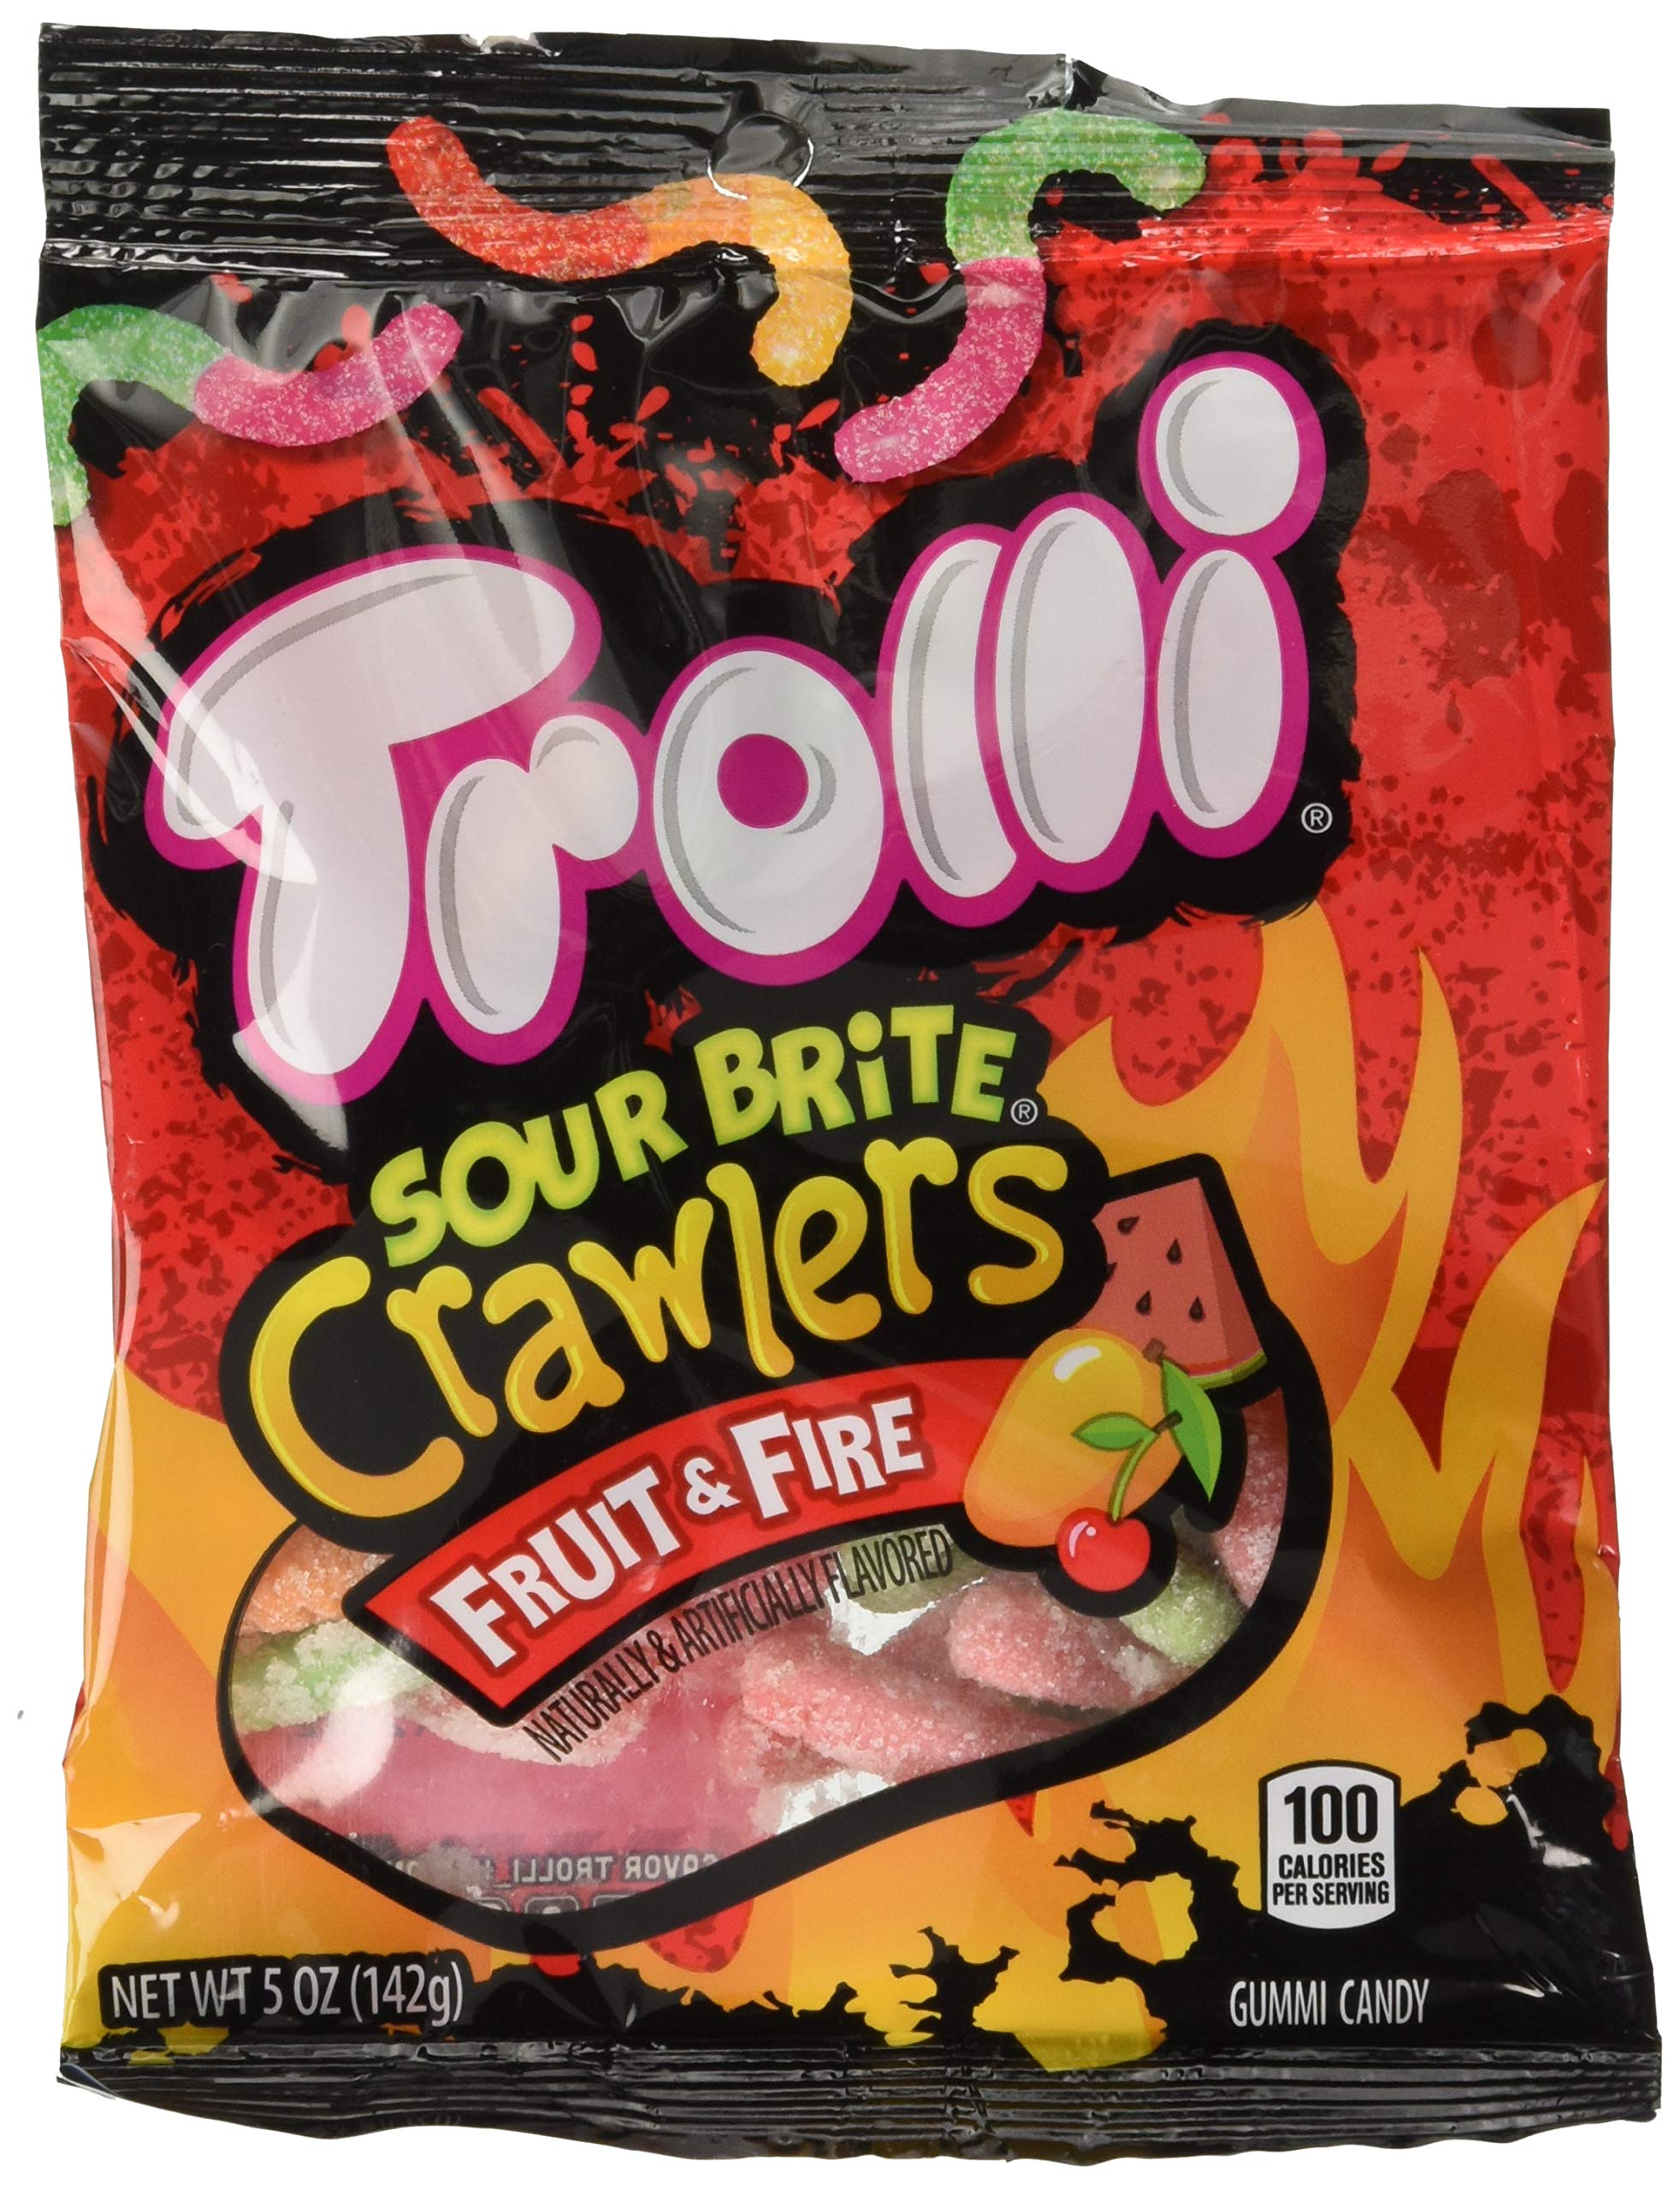 Trolli Sour Brite Crawlers Gummy Worms Fruit & Fire, 5 Ounce Peg Bag (Pack of 12) Sweet, Sour & Spicy Gummy Worms